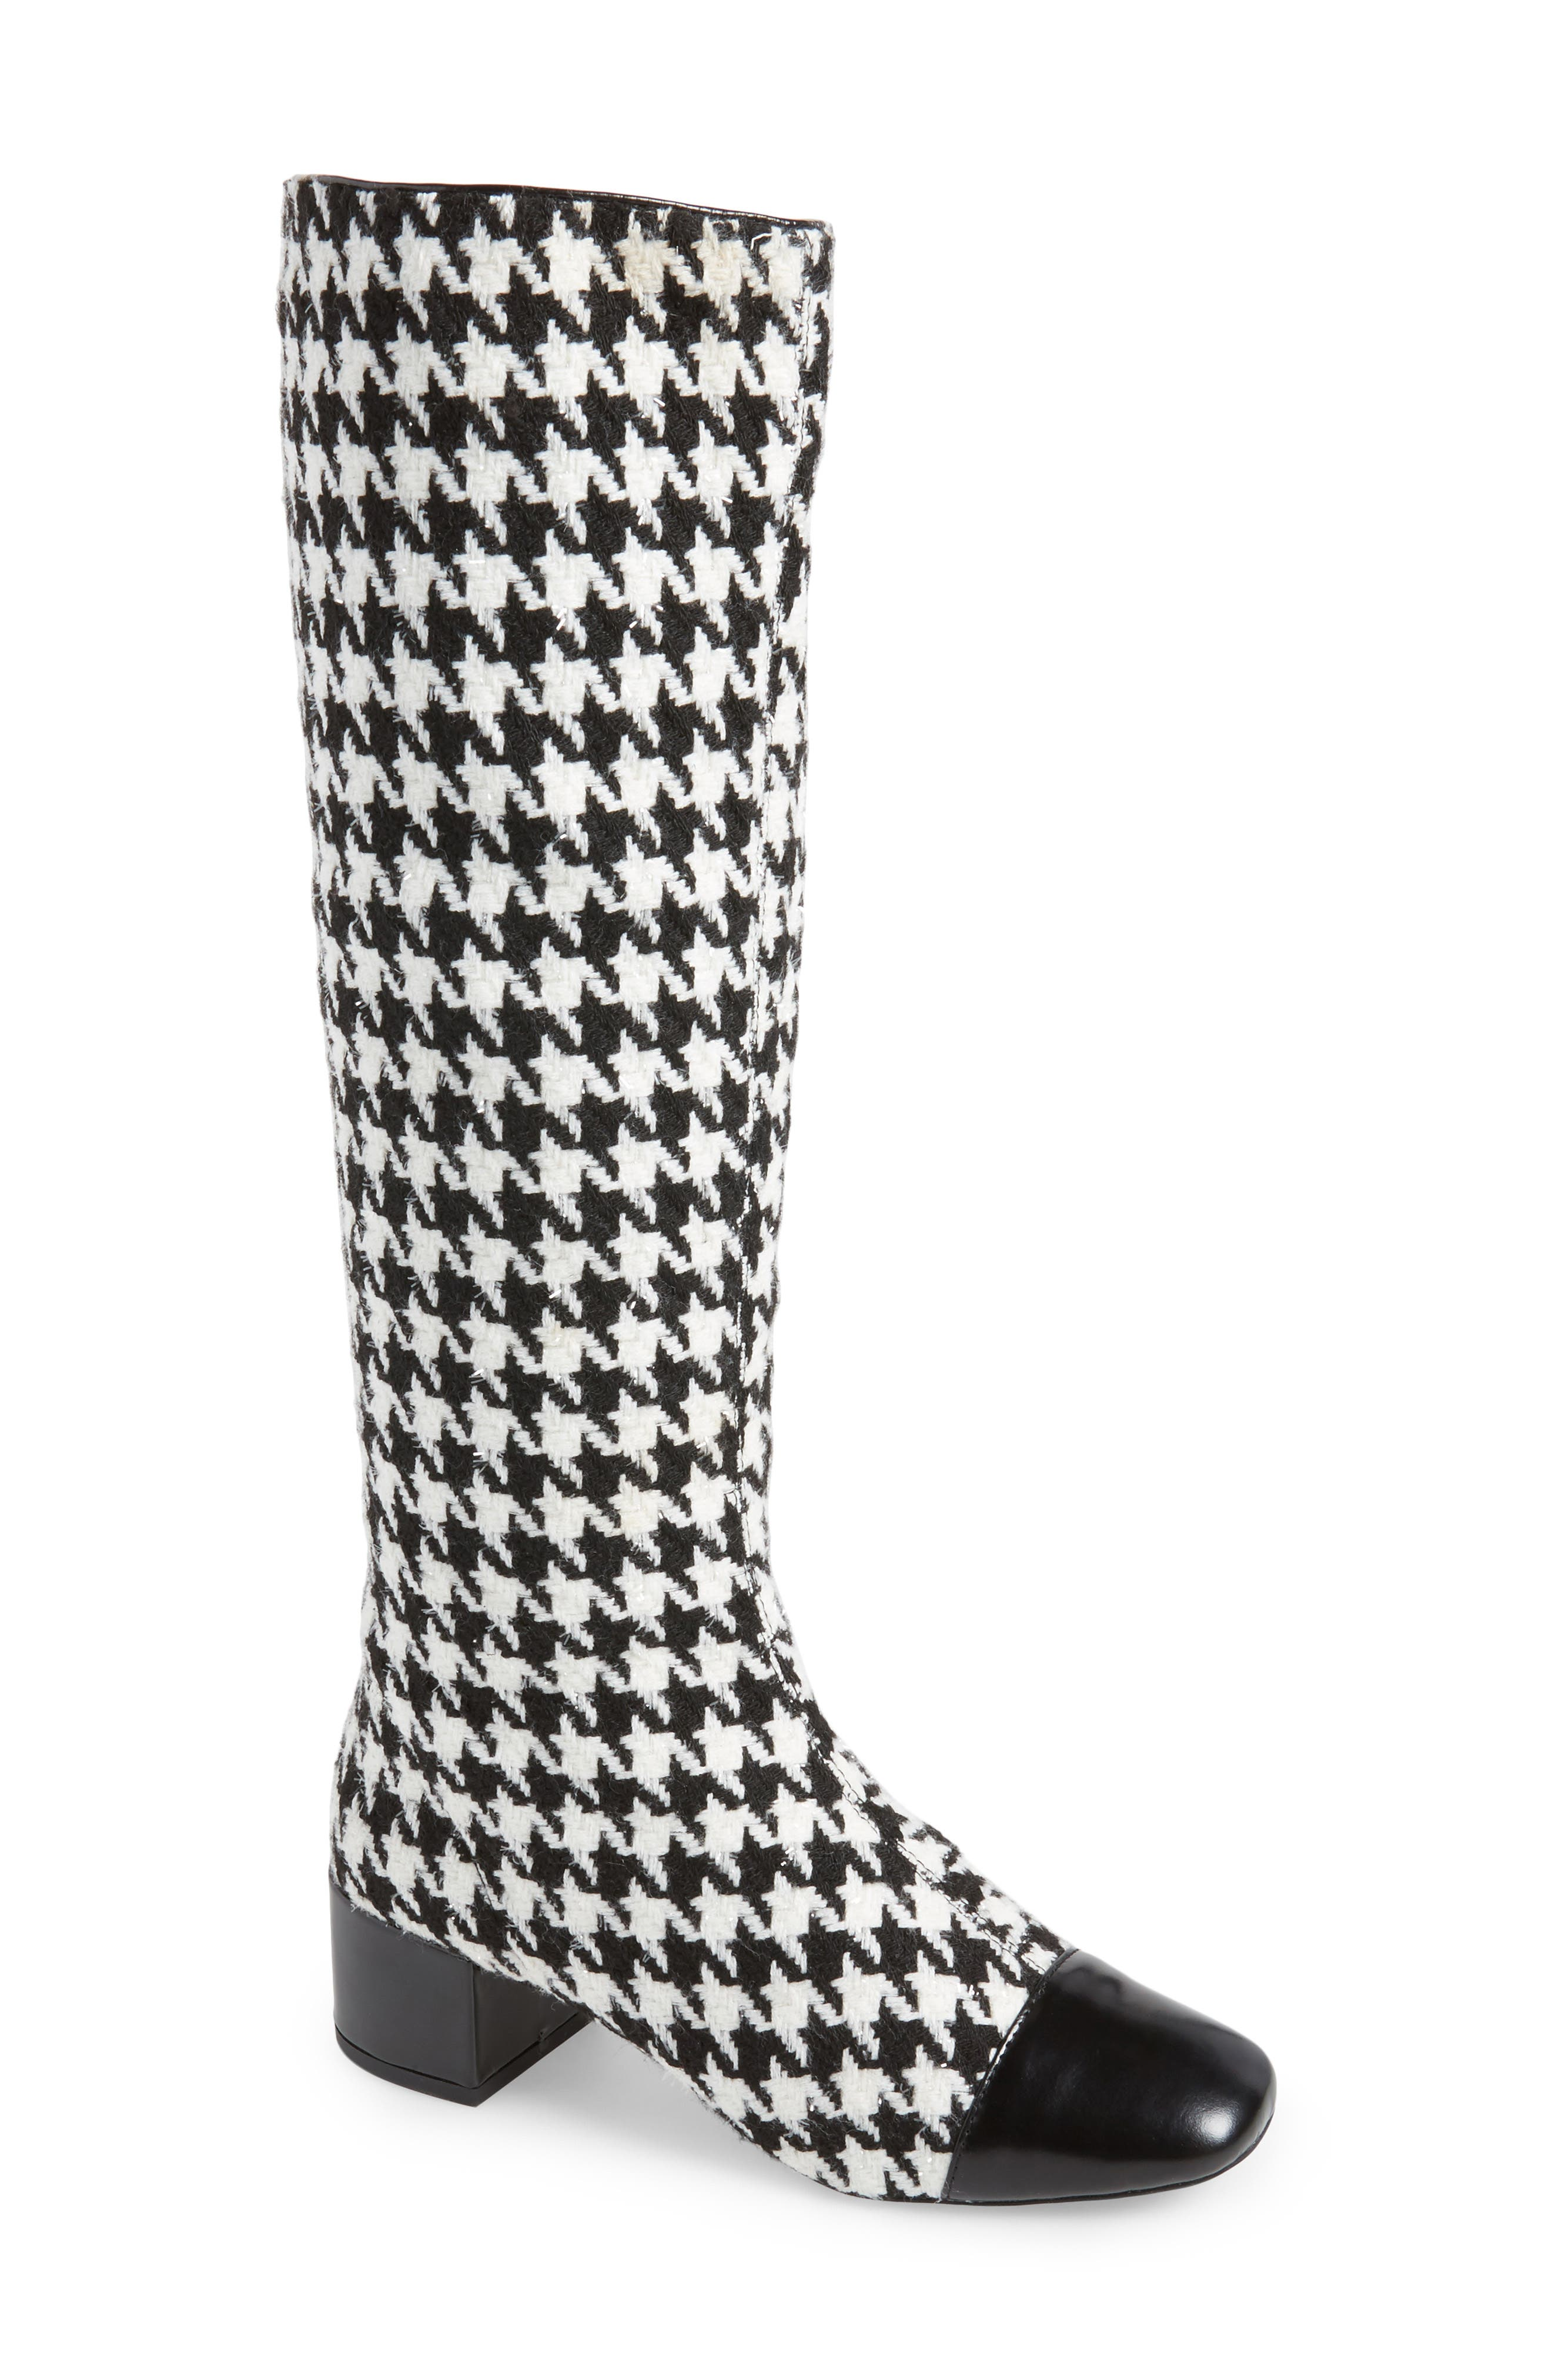 Covey Knee-High Boot,                         Main,                         color, Black White Houndstooth